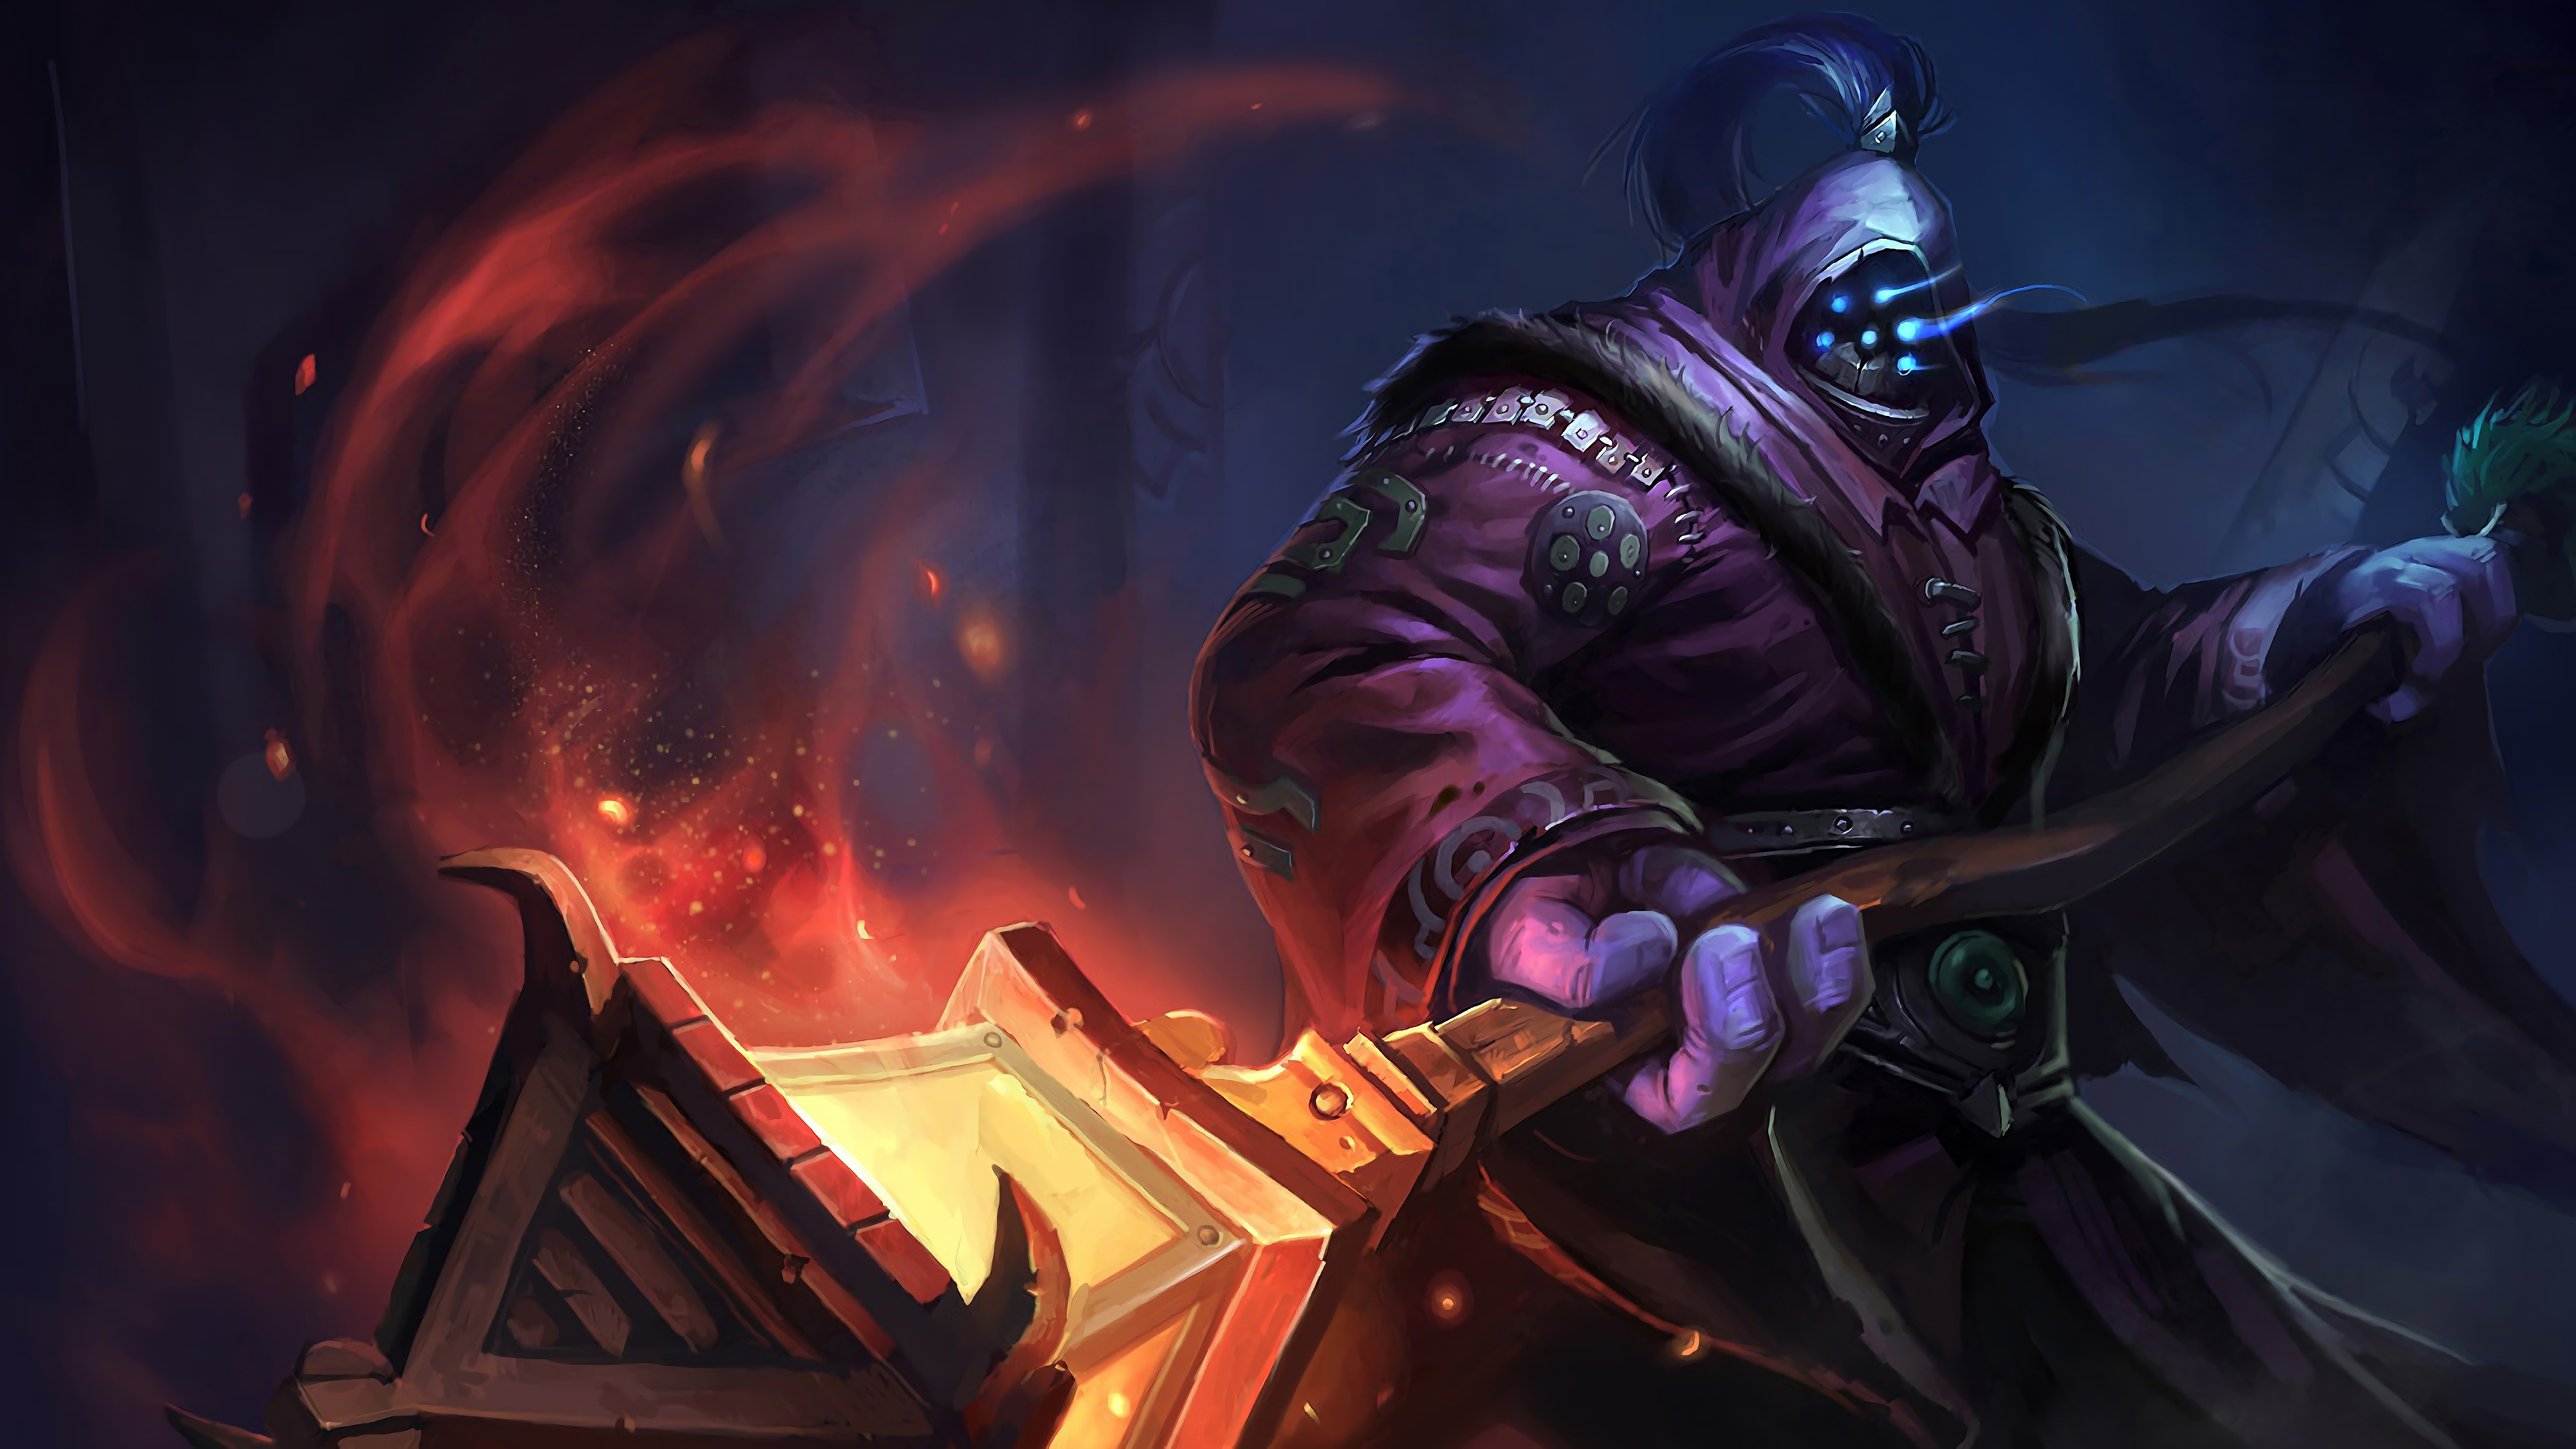 jax lol splash art league of legends lol 1574101826 - Jax LoL Splash Art League of Legends lol - league of legends, Jax